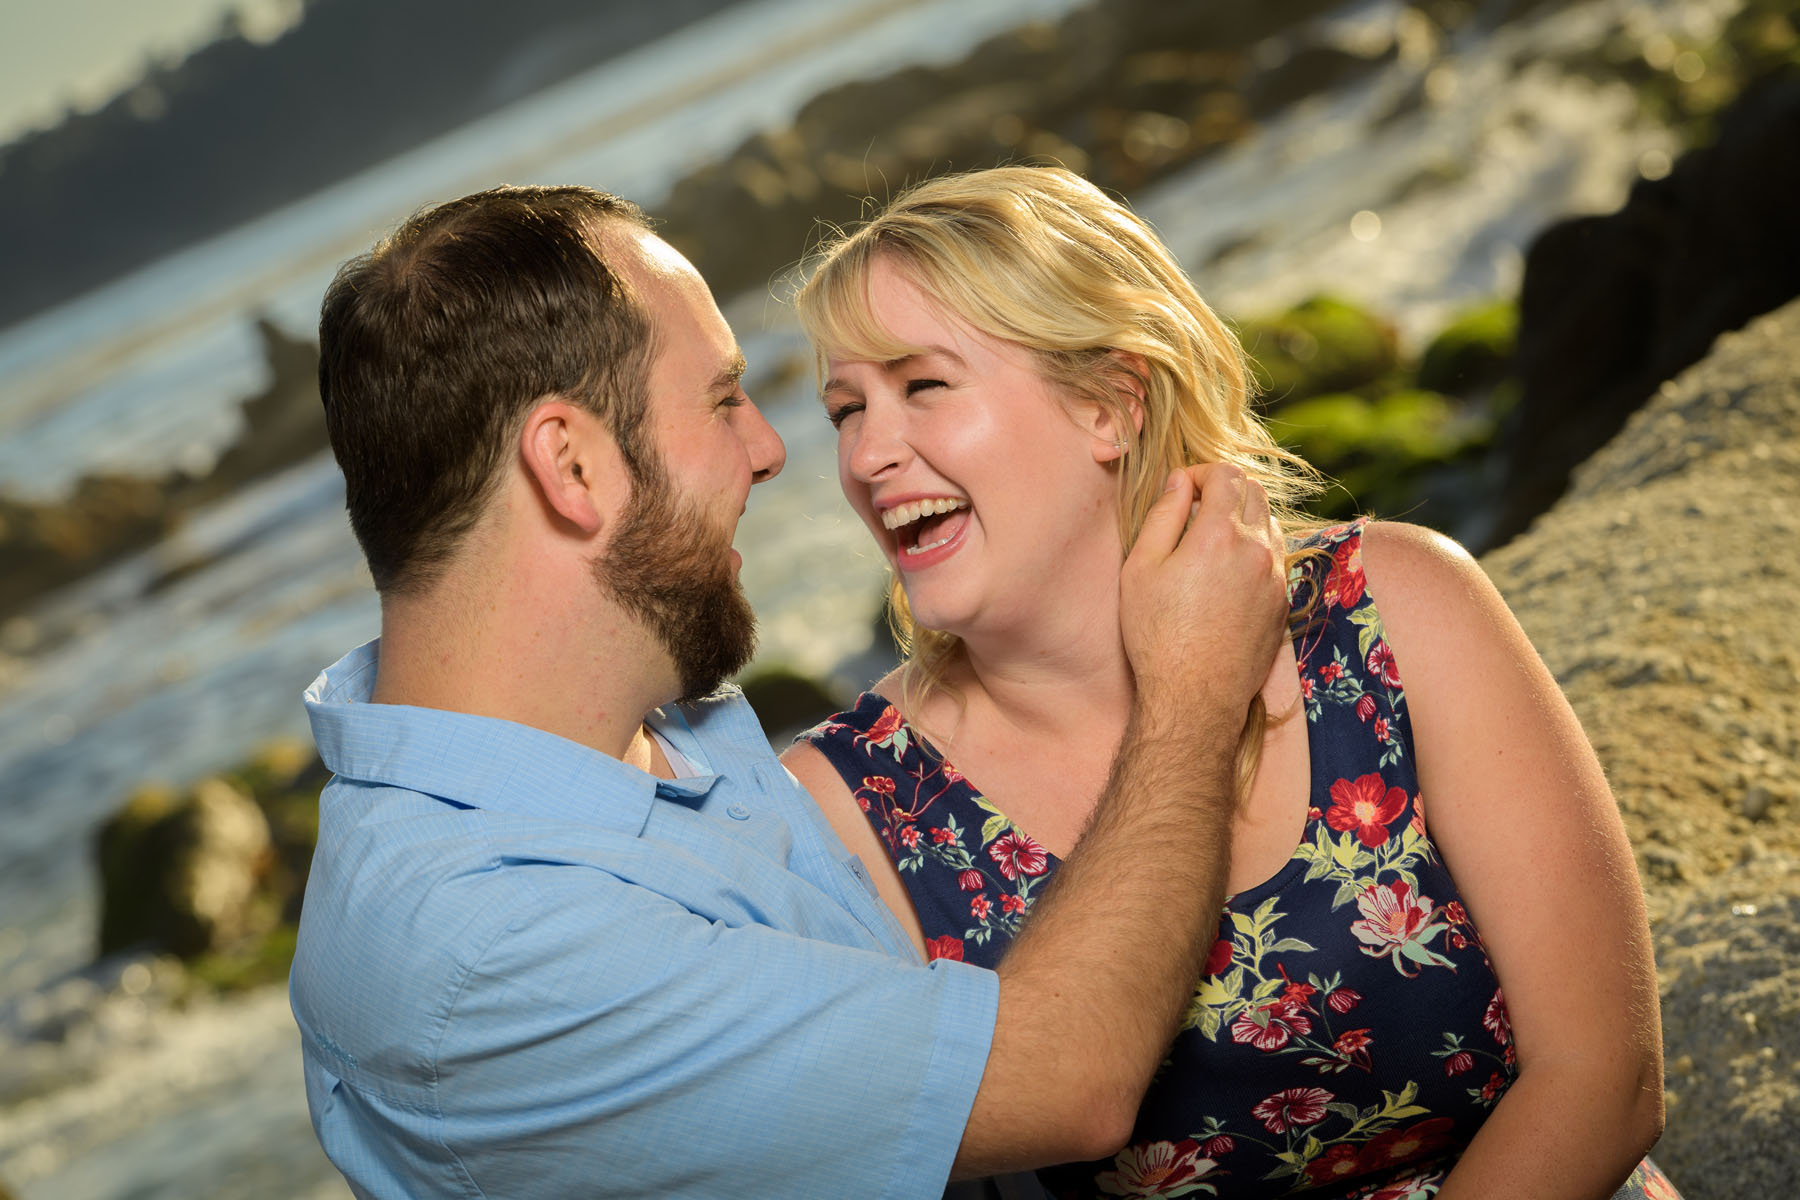 intimate couple, girl laughing - Stewart's Cove - Carmel Engagement Photography - photos by Bay Area wedding photographer Chris Schmauch